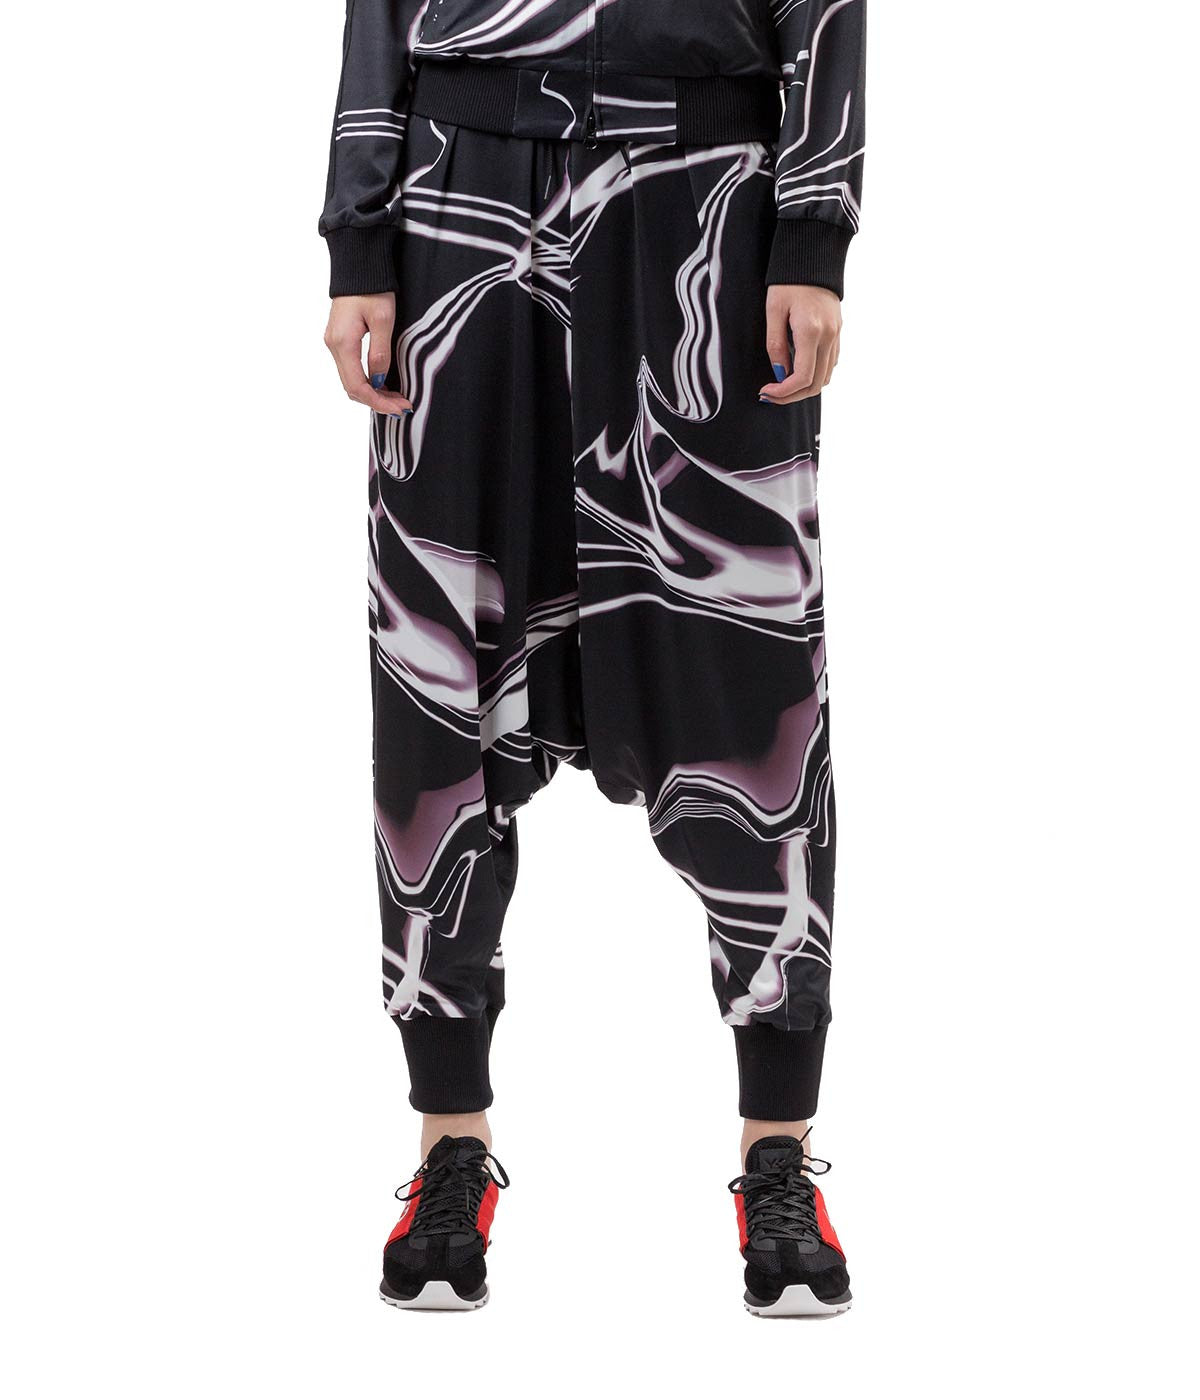 Extreme Dropped Crotch Printed Lounge Pants